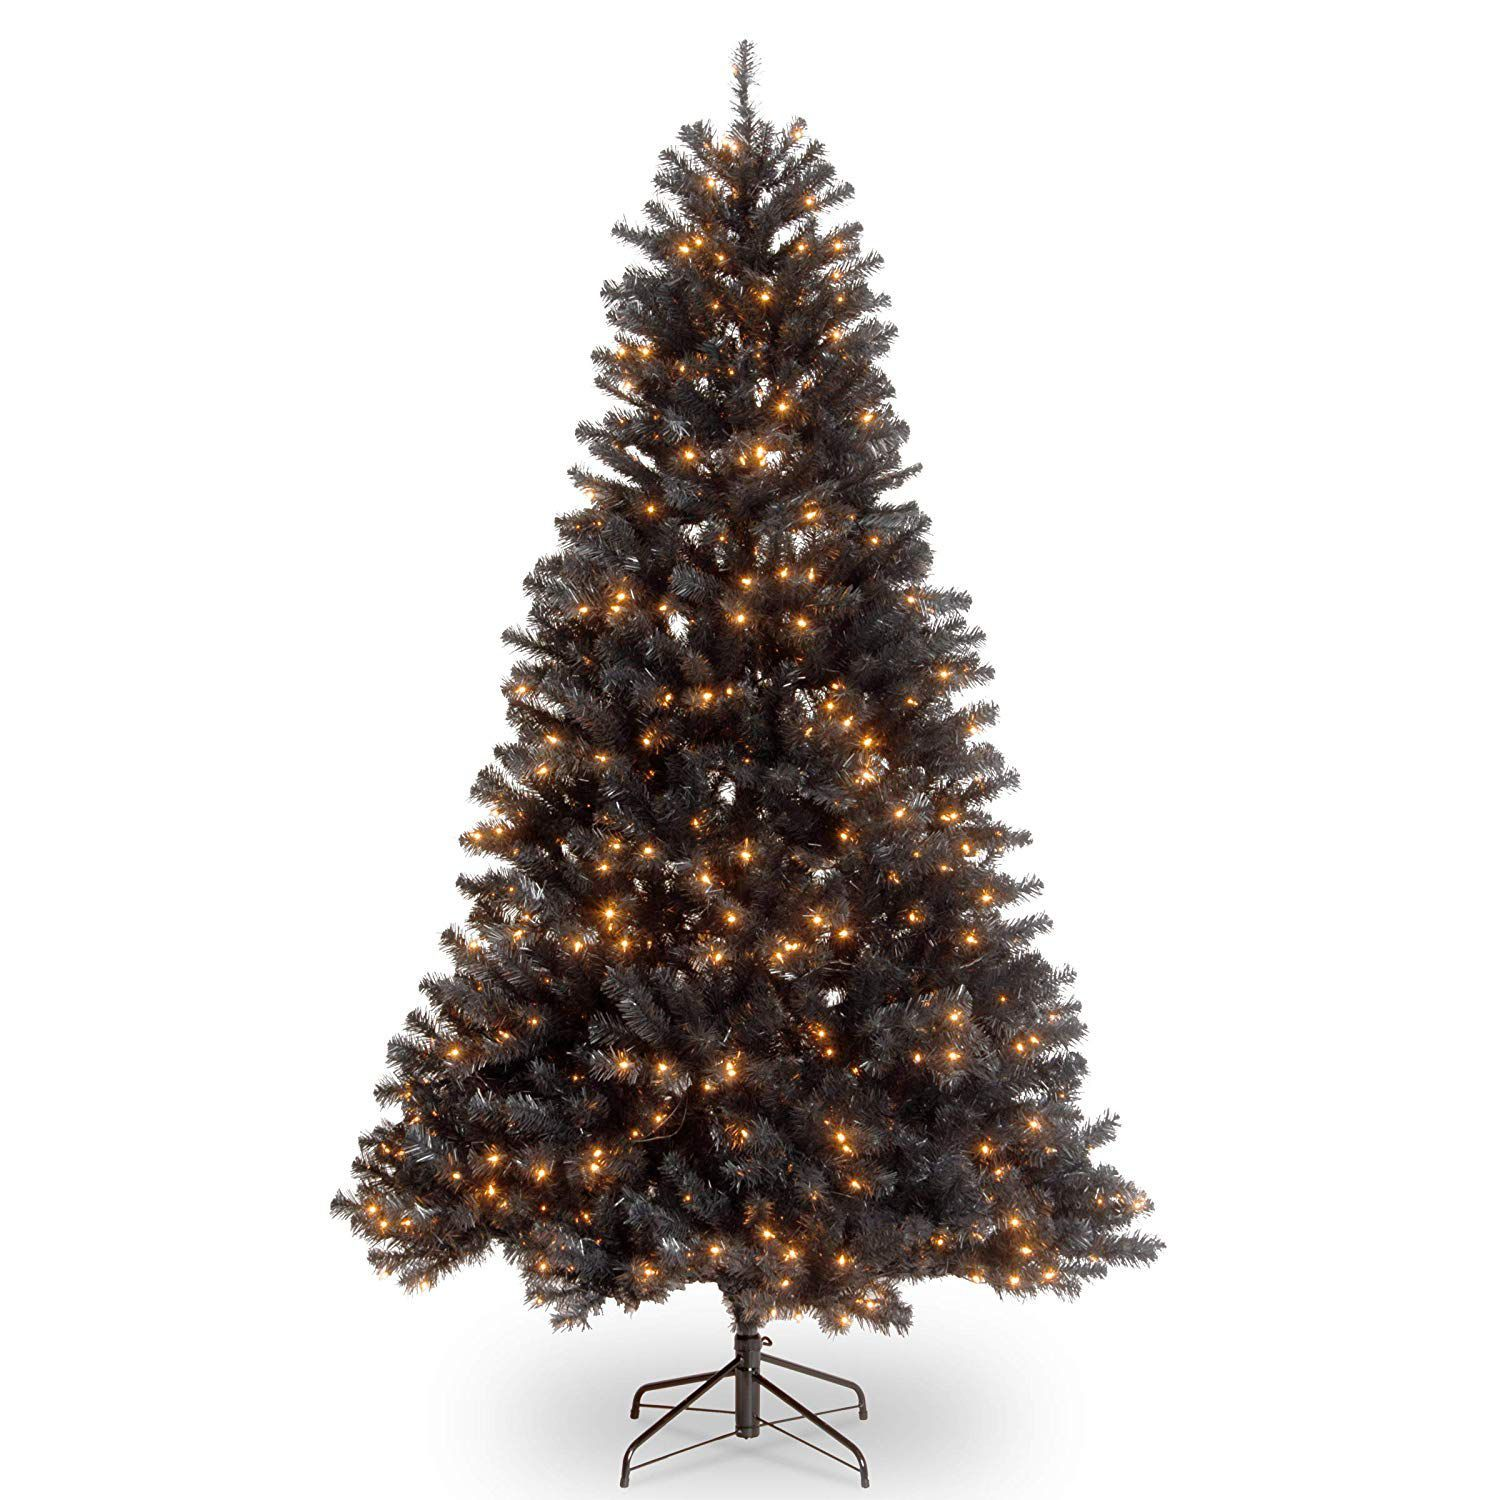 Black Christmas Trees Are The New